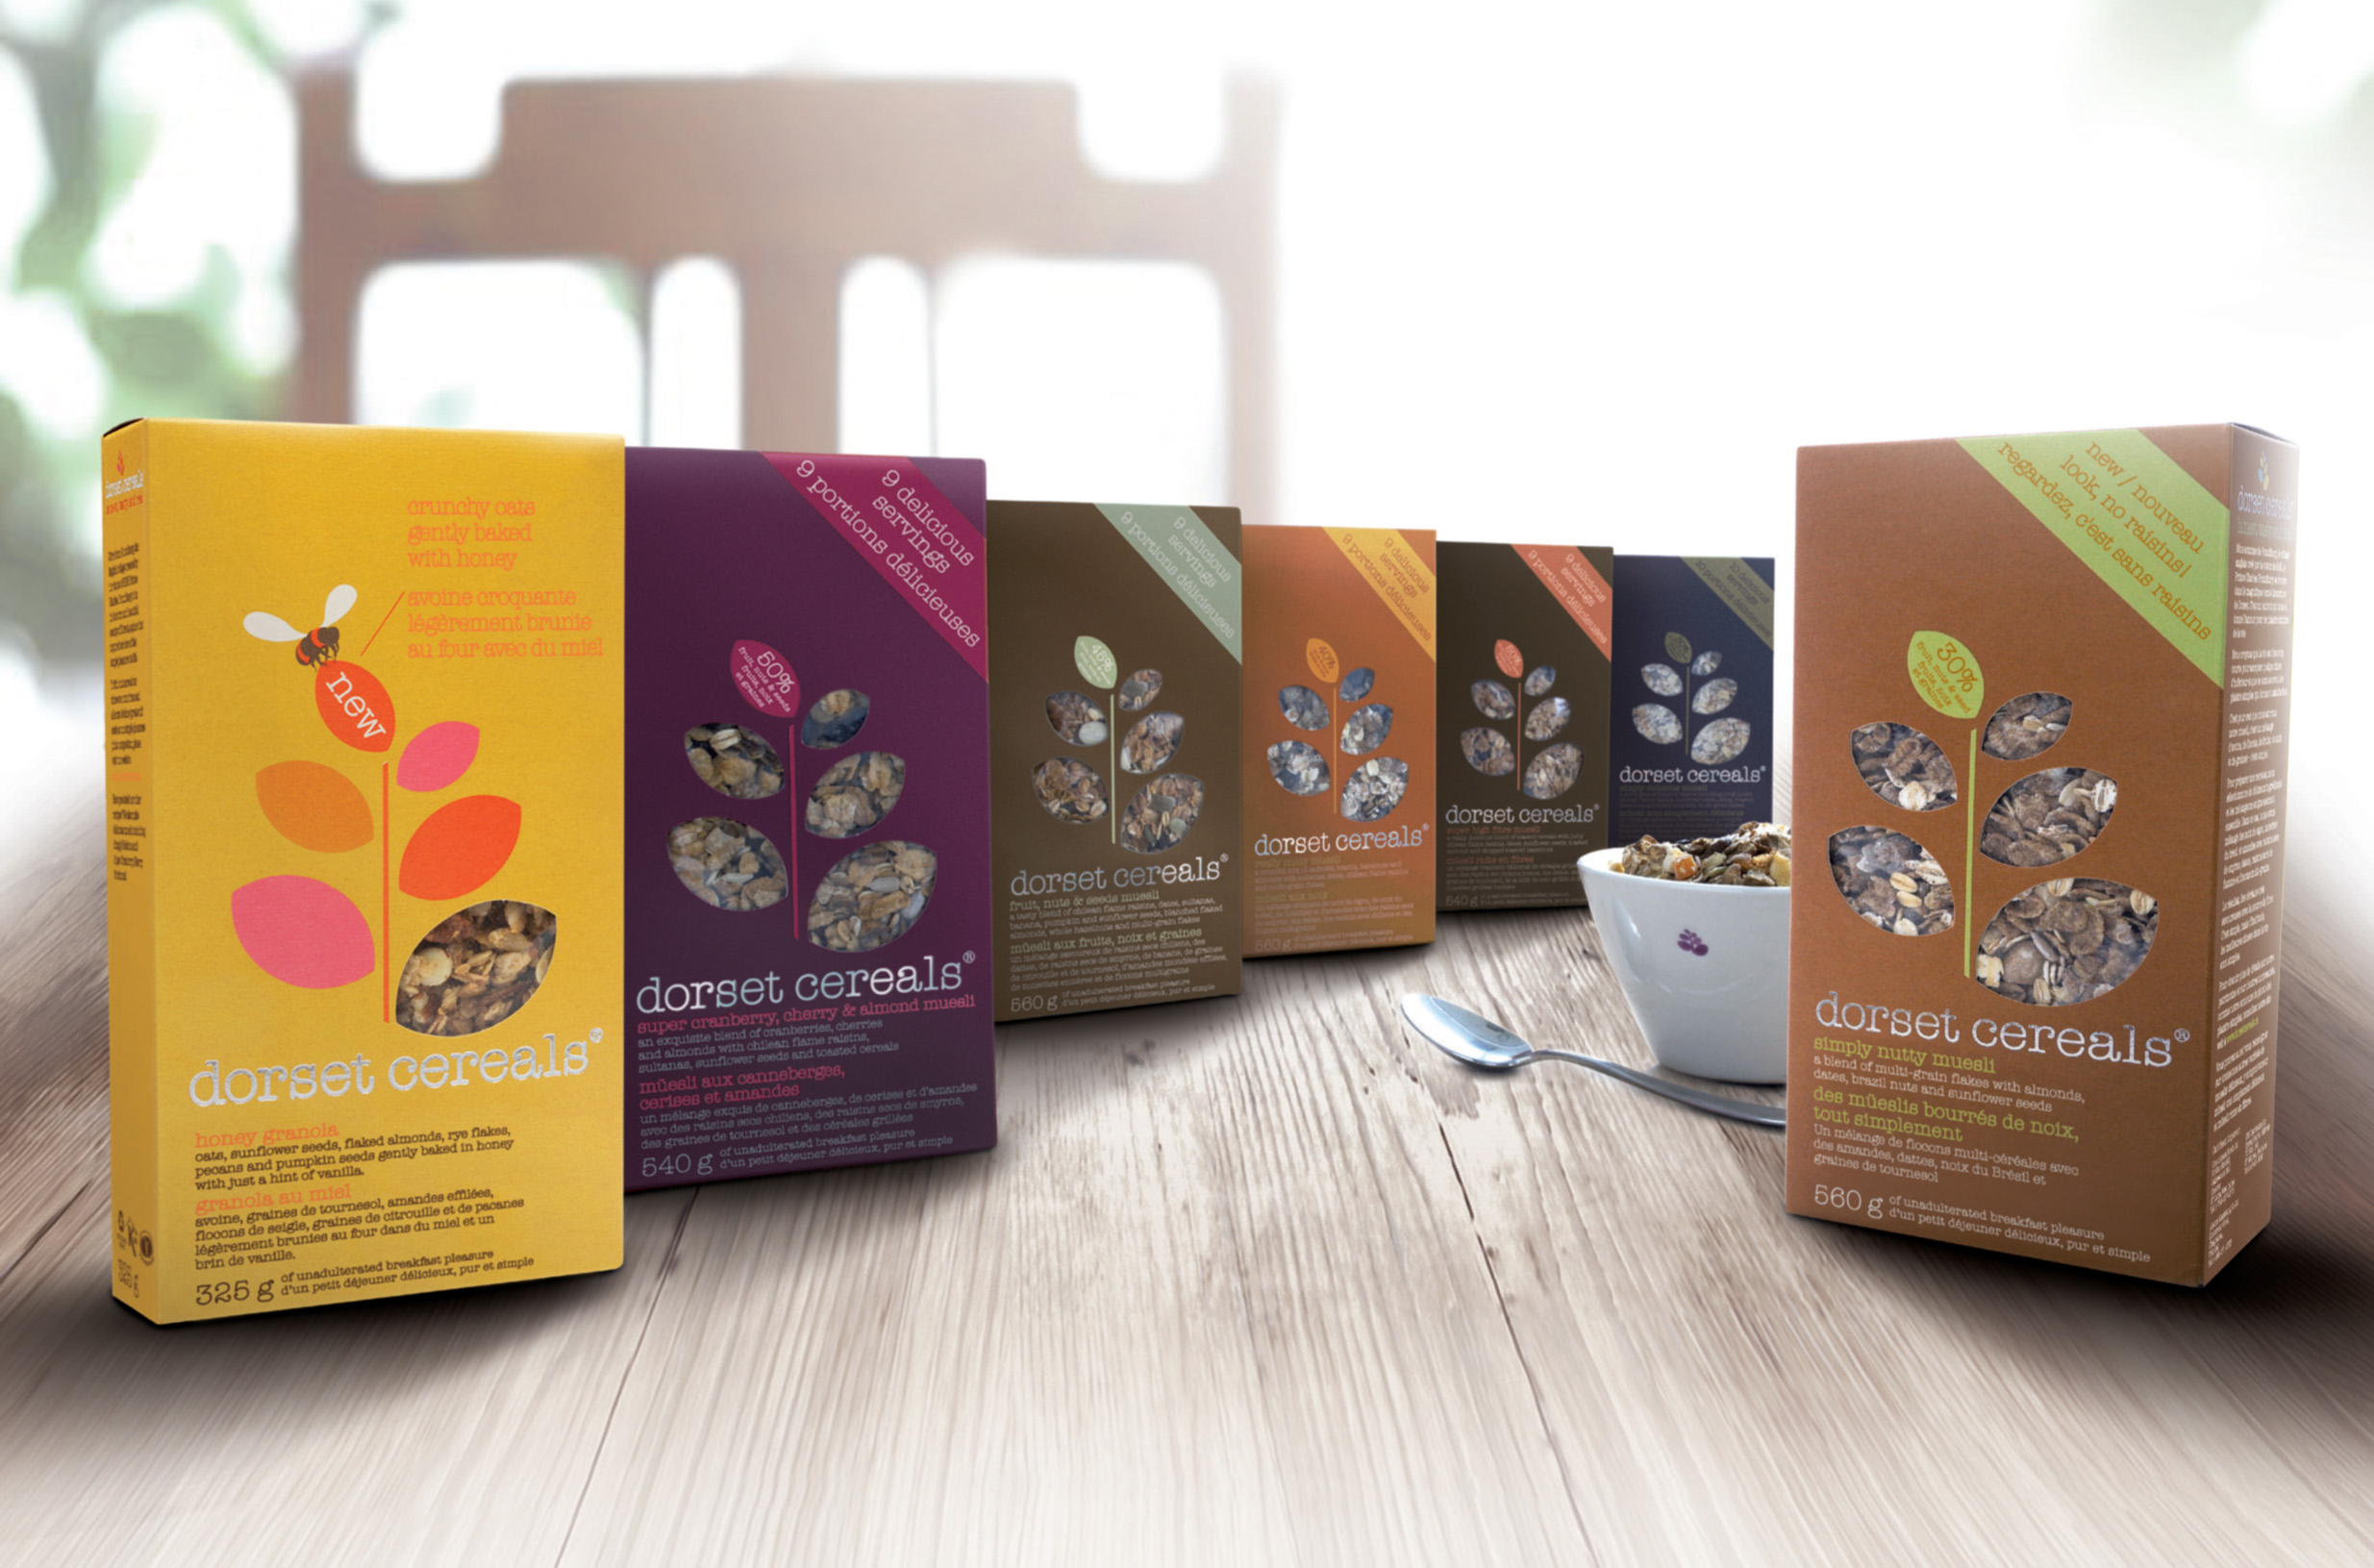 Dorset Cereal Product Line up